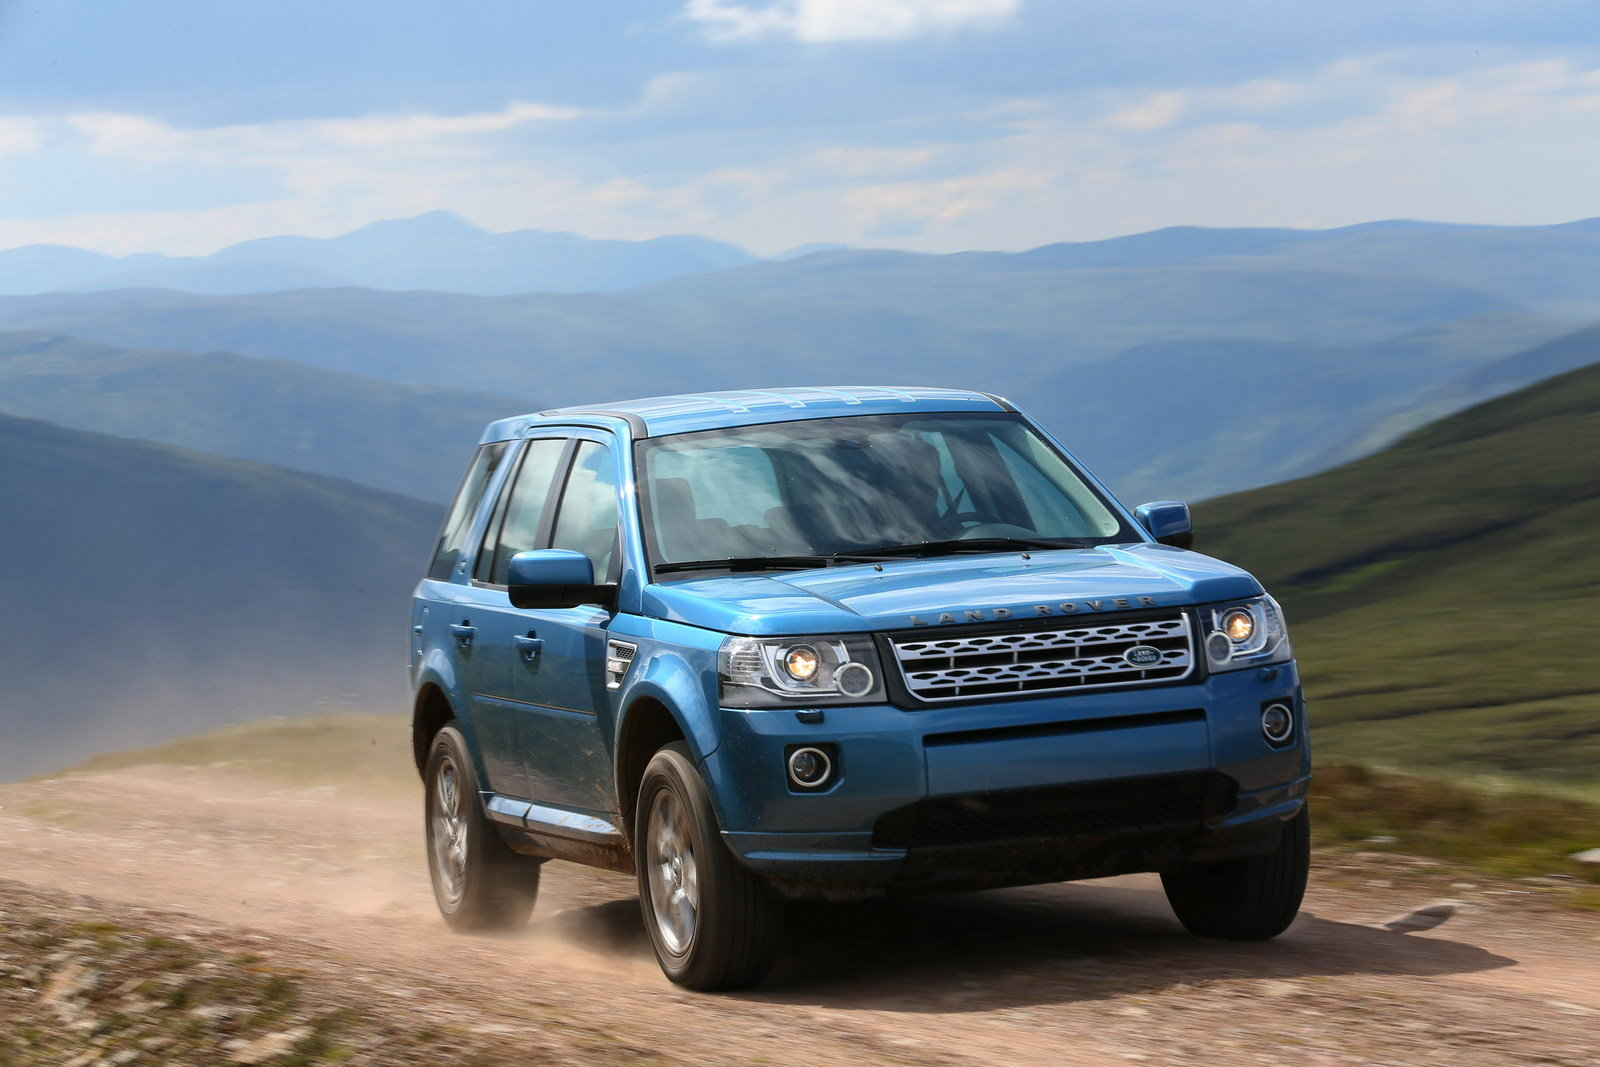 2013 land rover freelander 2 review top speed. Black Bedroom Furniture Sets. Home Design Ideas